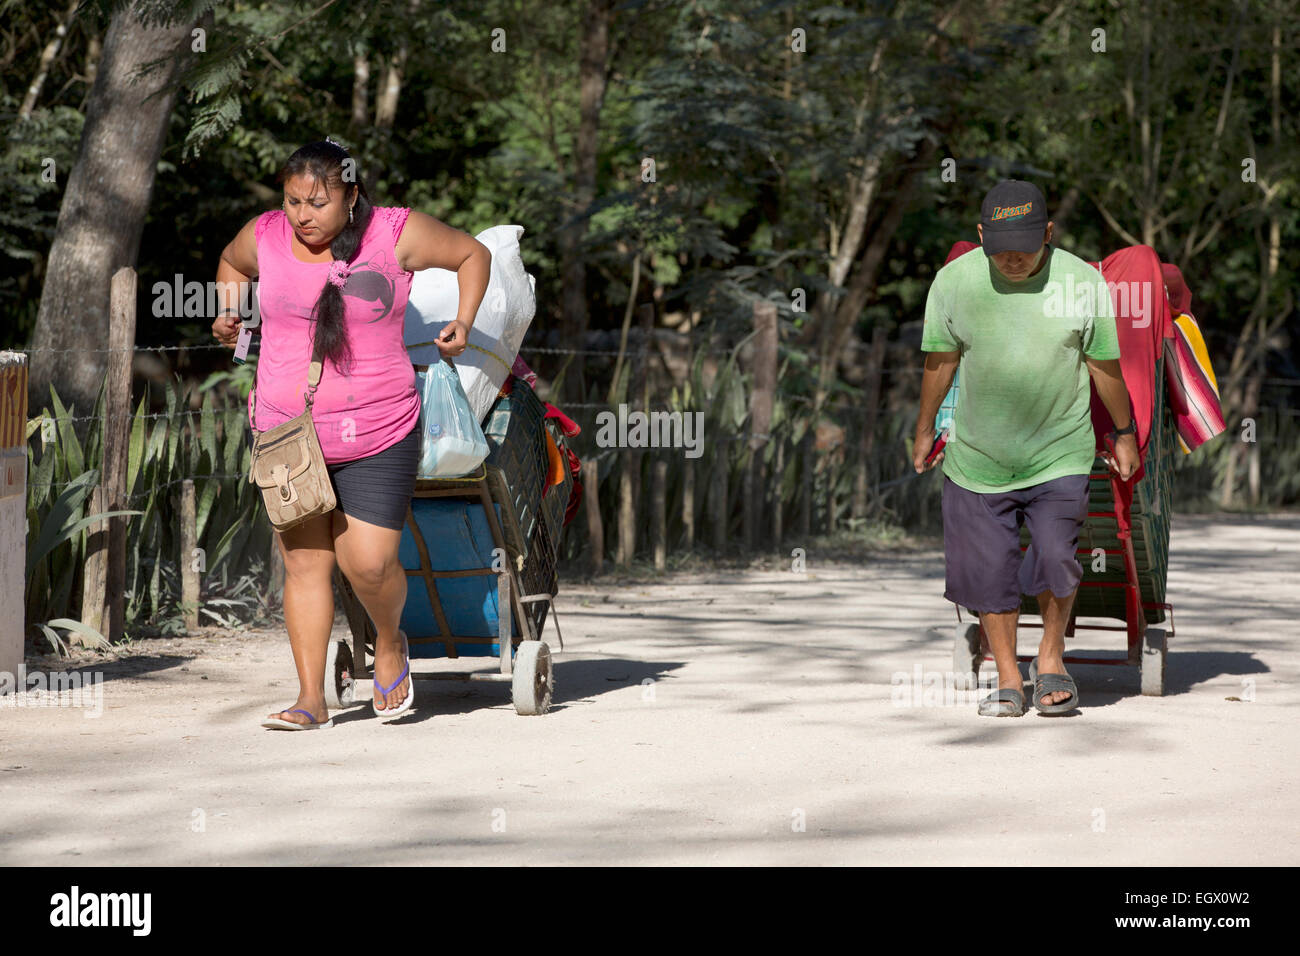 Souvenir vendors walking to set up their wares at Chichen Itza, Yucatan, Mexico - Stock Image